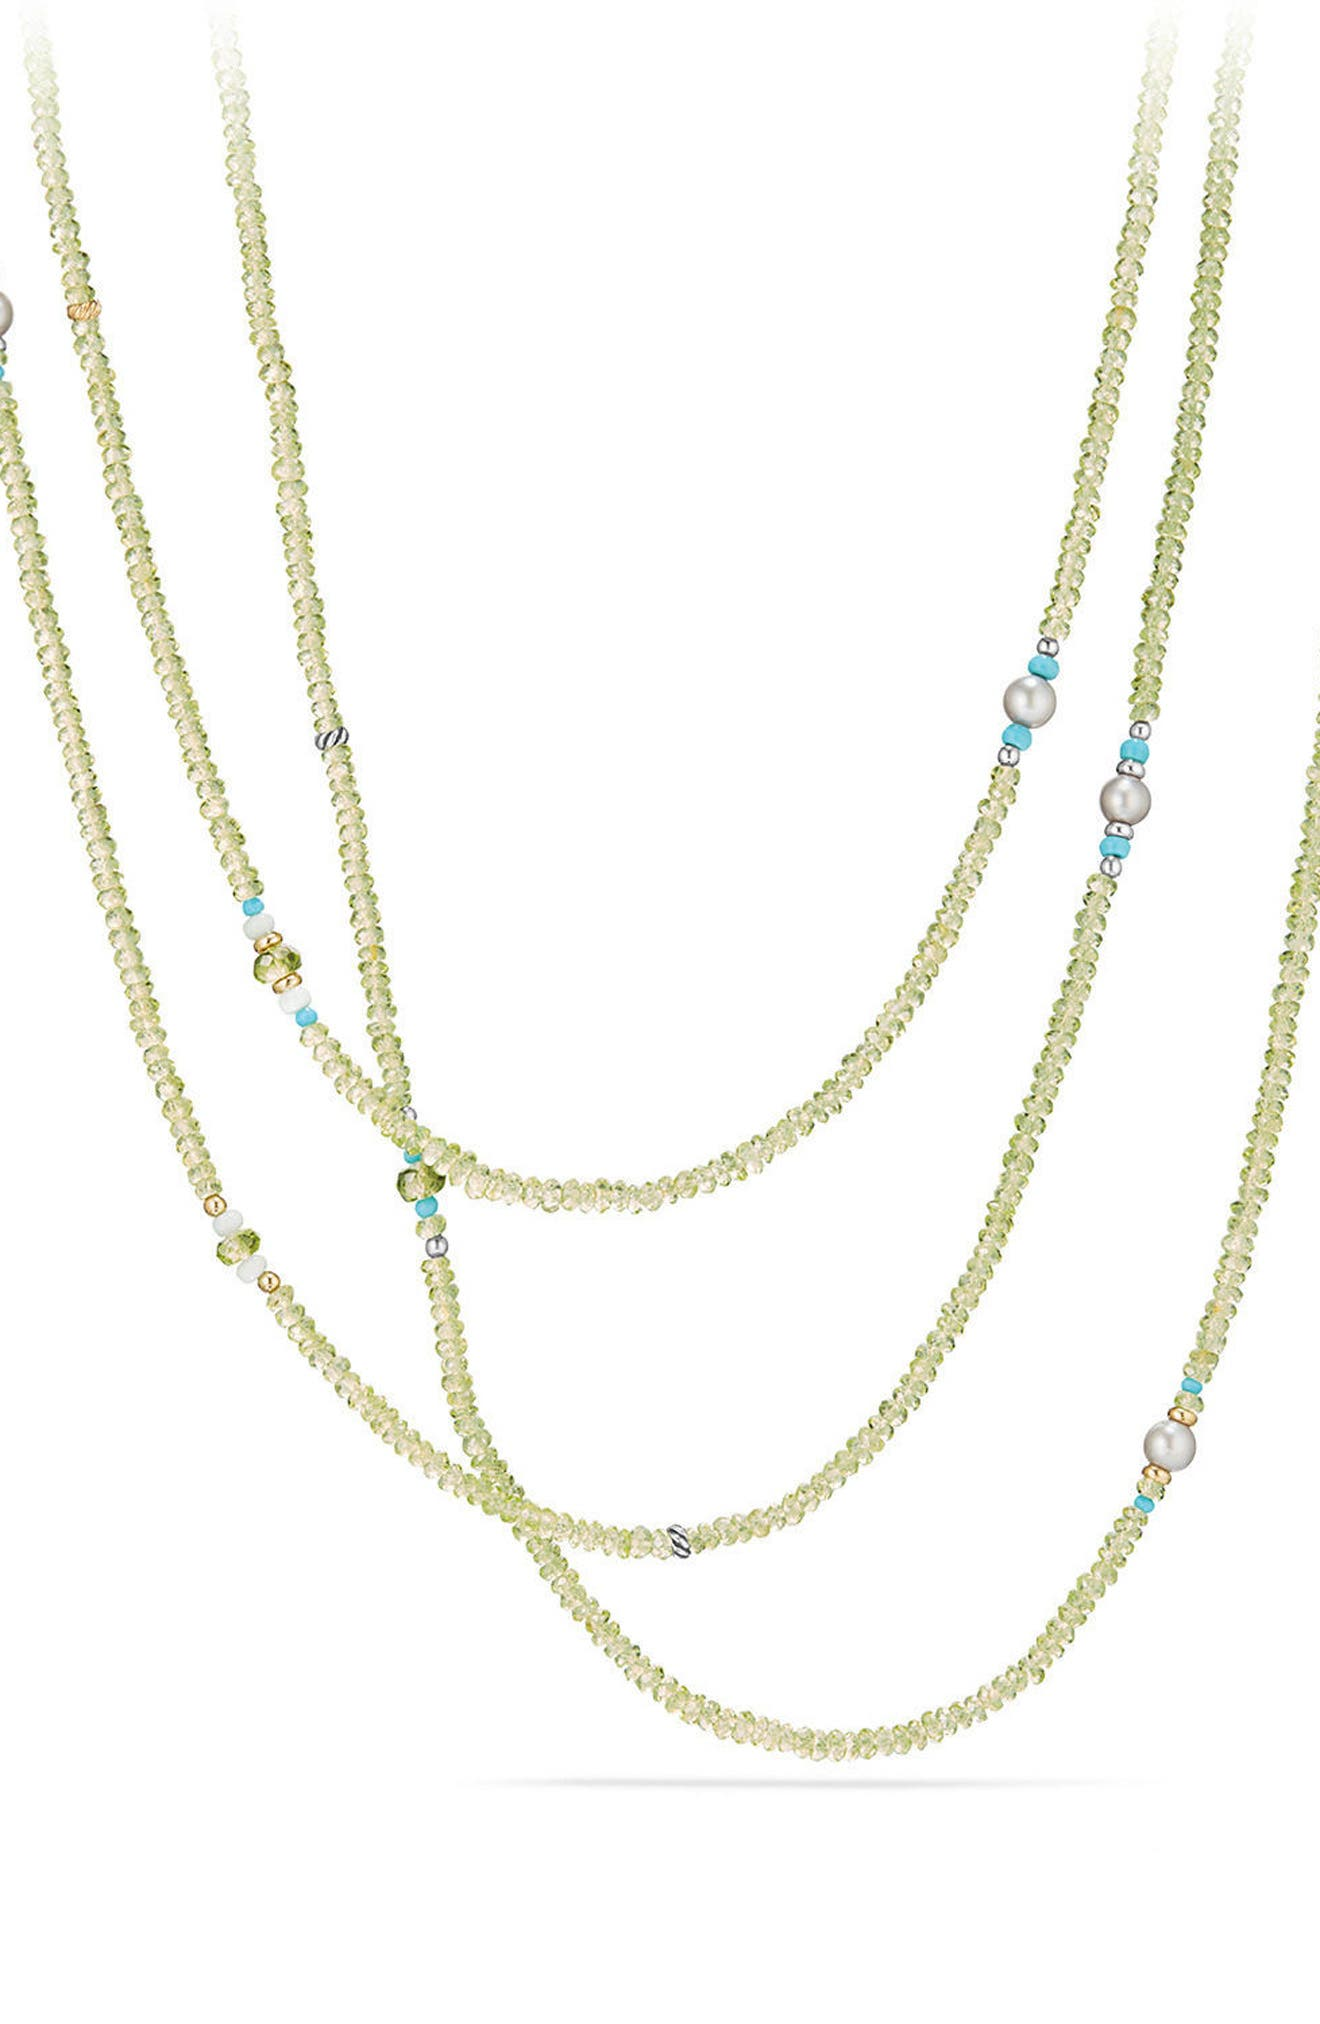 Mustique Tweejoux Beaded Necklace,                         Main,                         color, SILVER/ GOLD/ MULTI